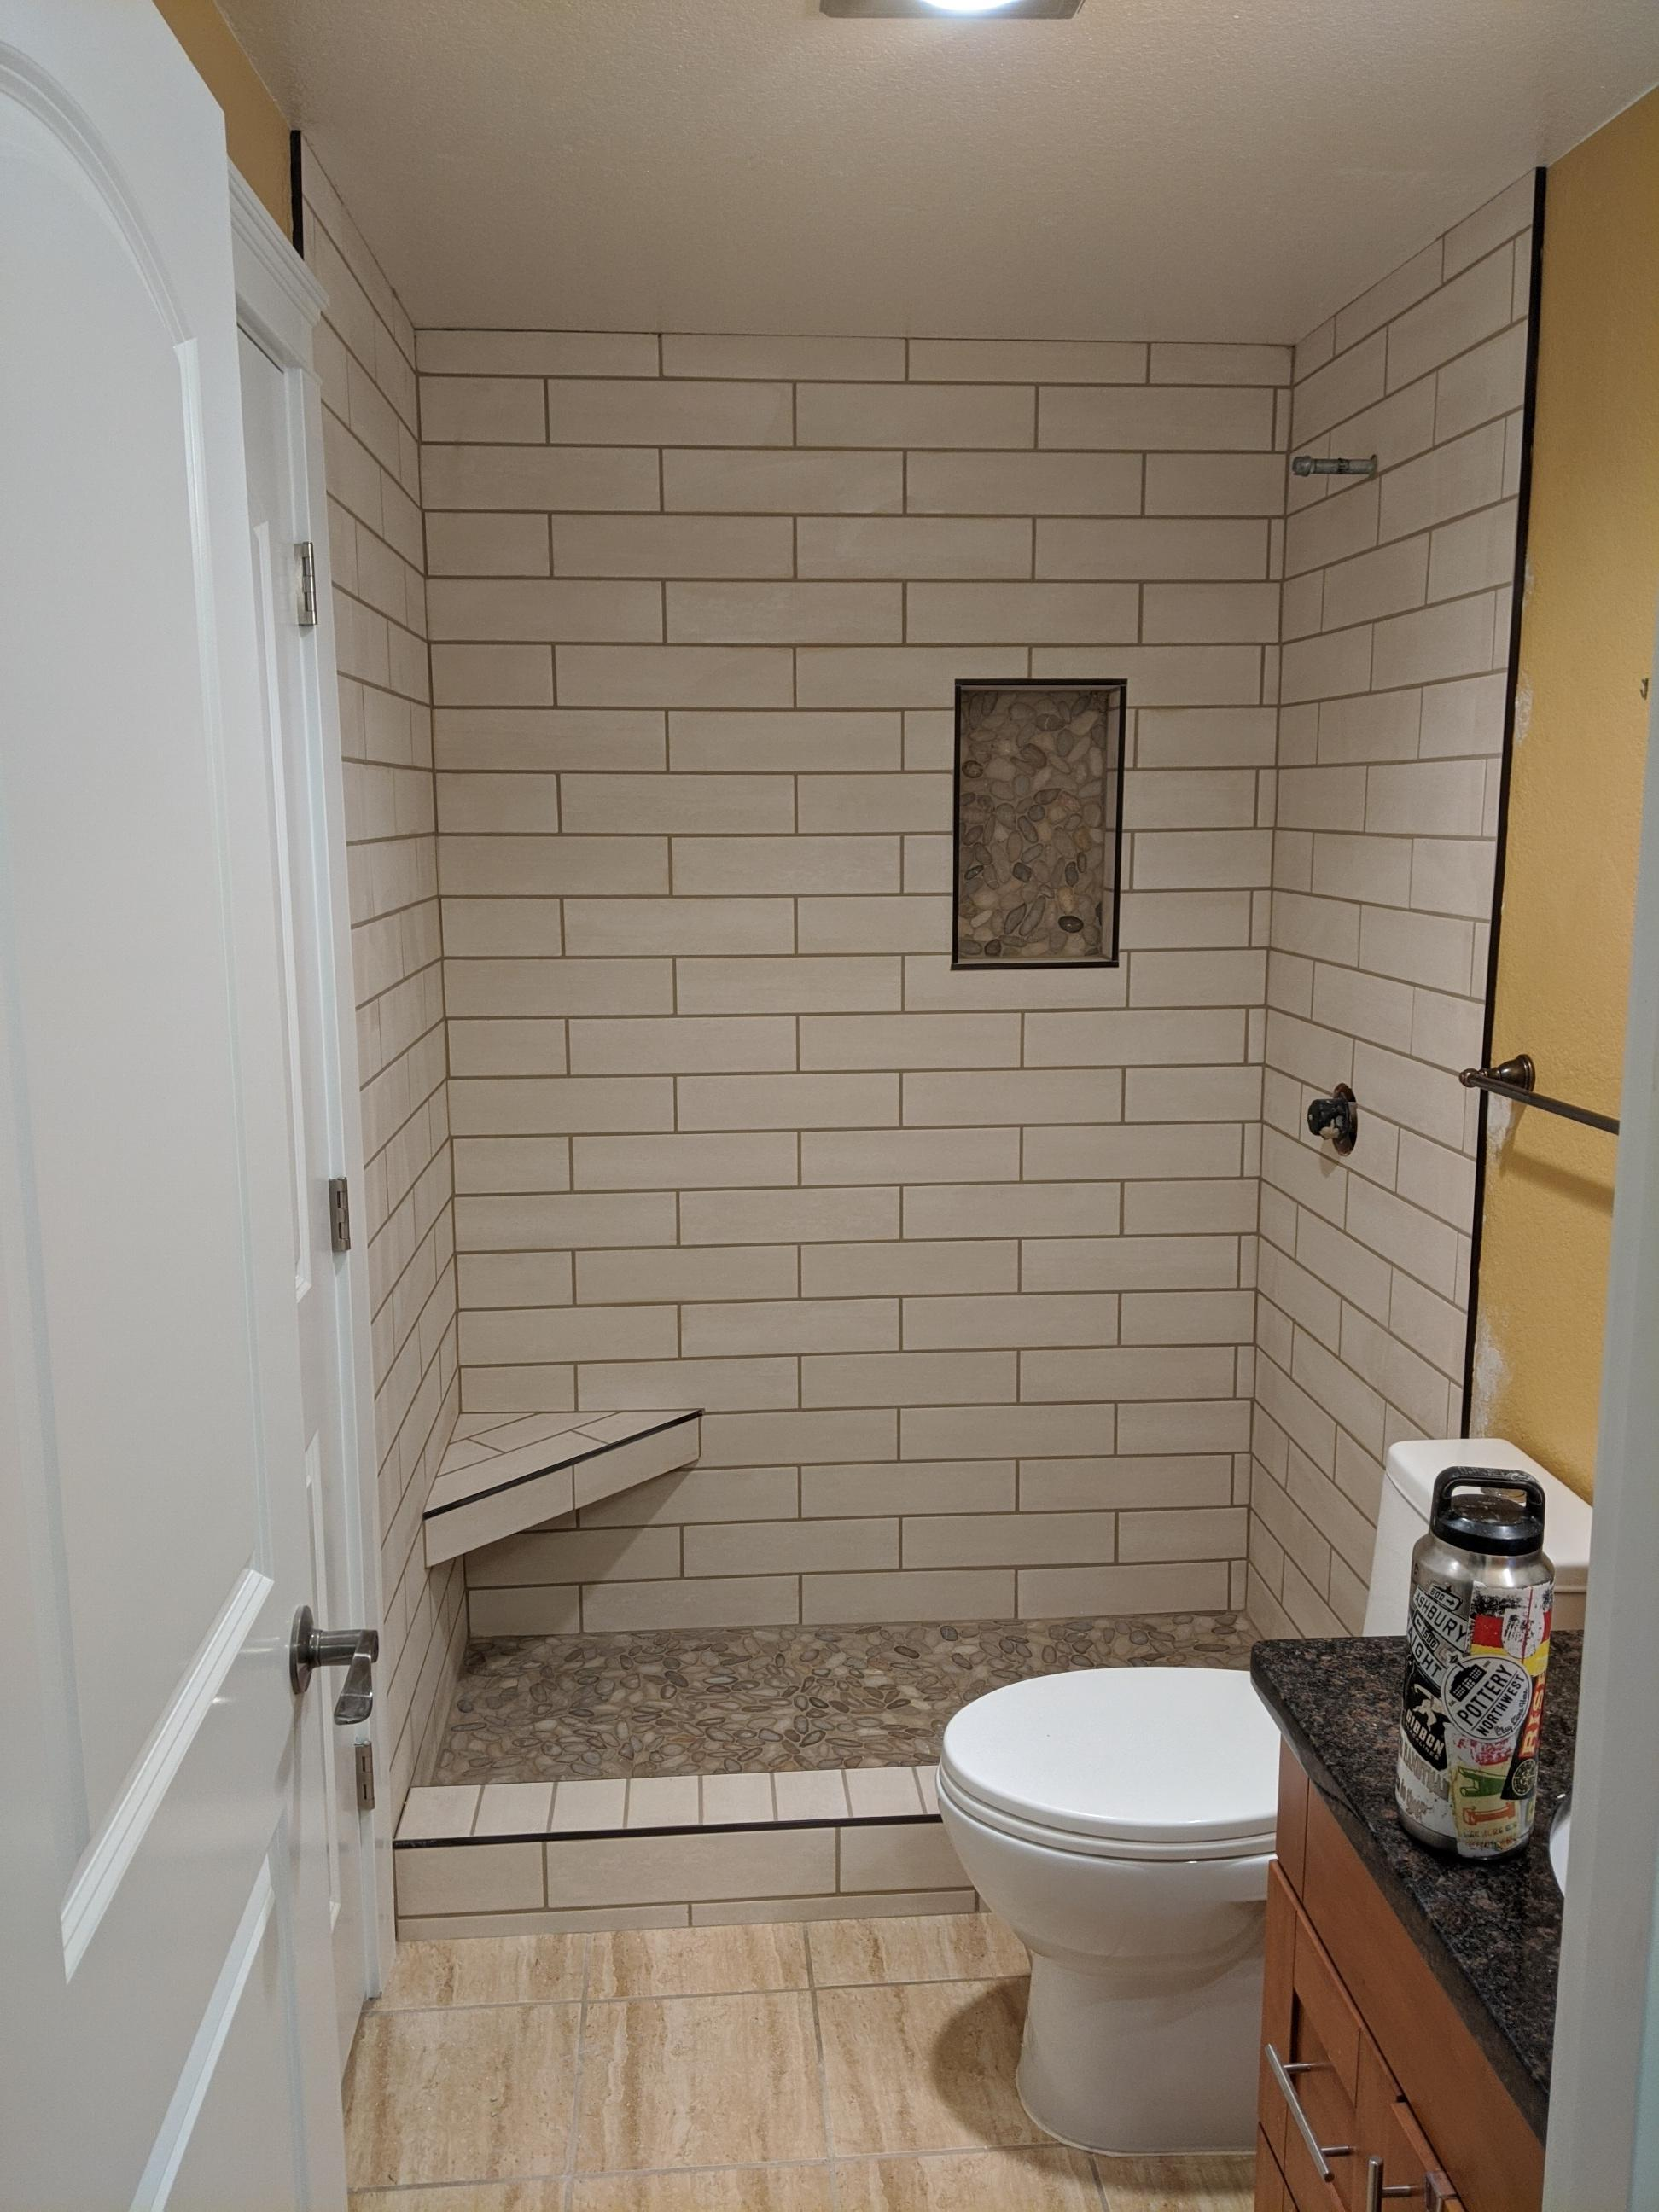 4x16 wall tile with river stone niche